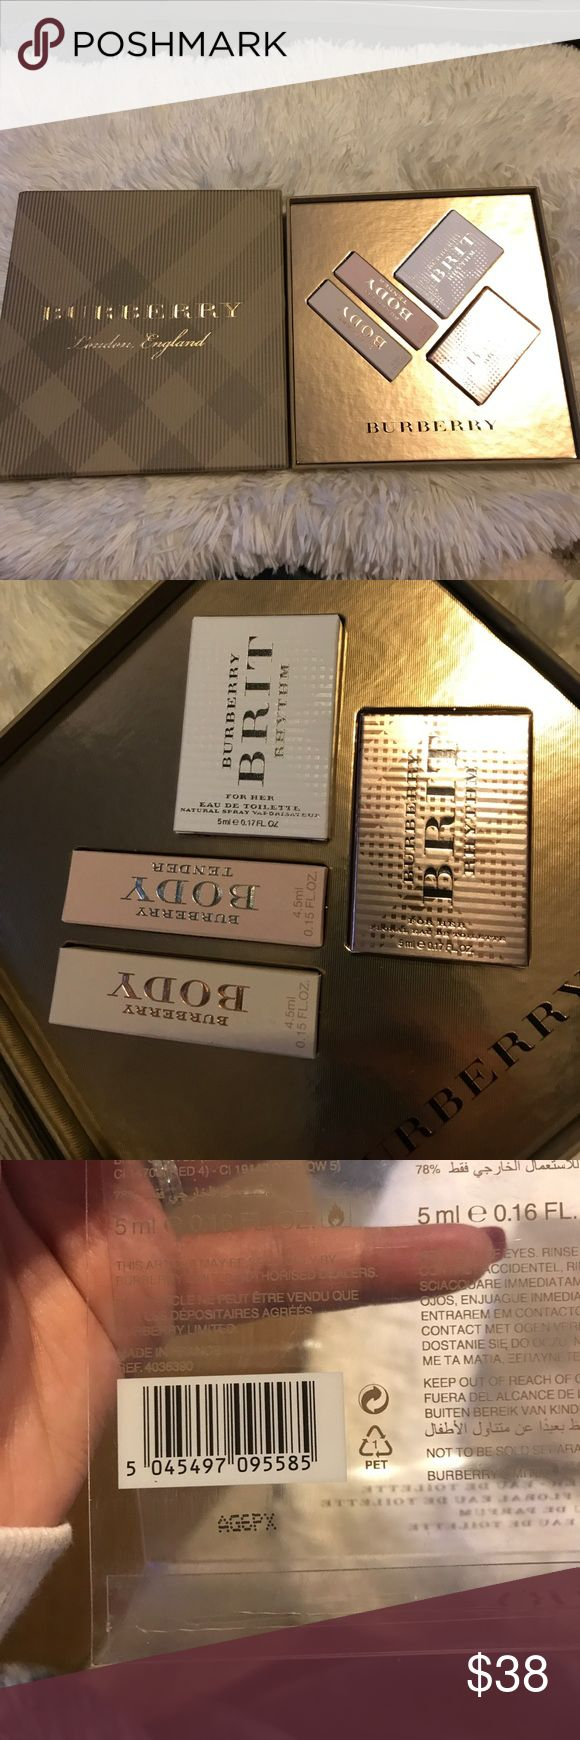 AUTHENITC BURBERRY LONDON THE COLLECTION FOR WOMEN Cute little mini set of Burberry perfumes: BURBERRY BRIT RHYTHM FOR HER 5ml (2) BODY PERFUME (1) 4.5ml and BODY TOILETTE (1) 4.5ml. Super cute gift set Burberry Makeup